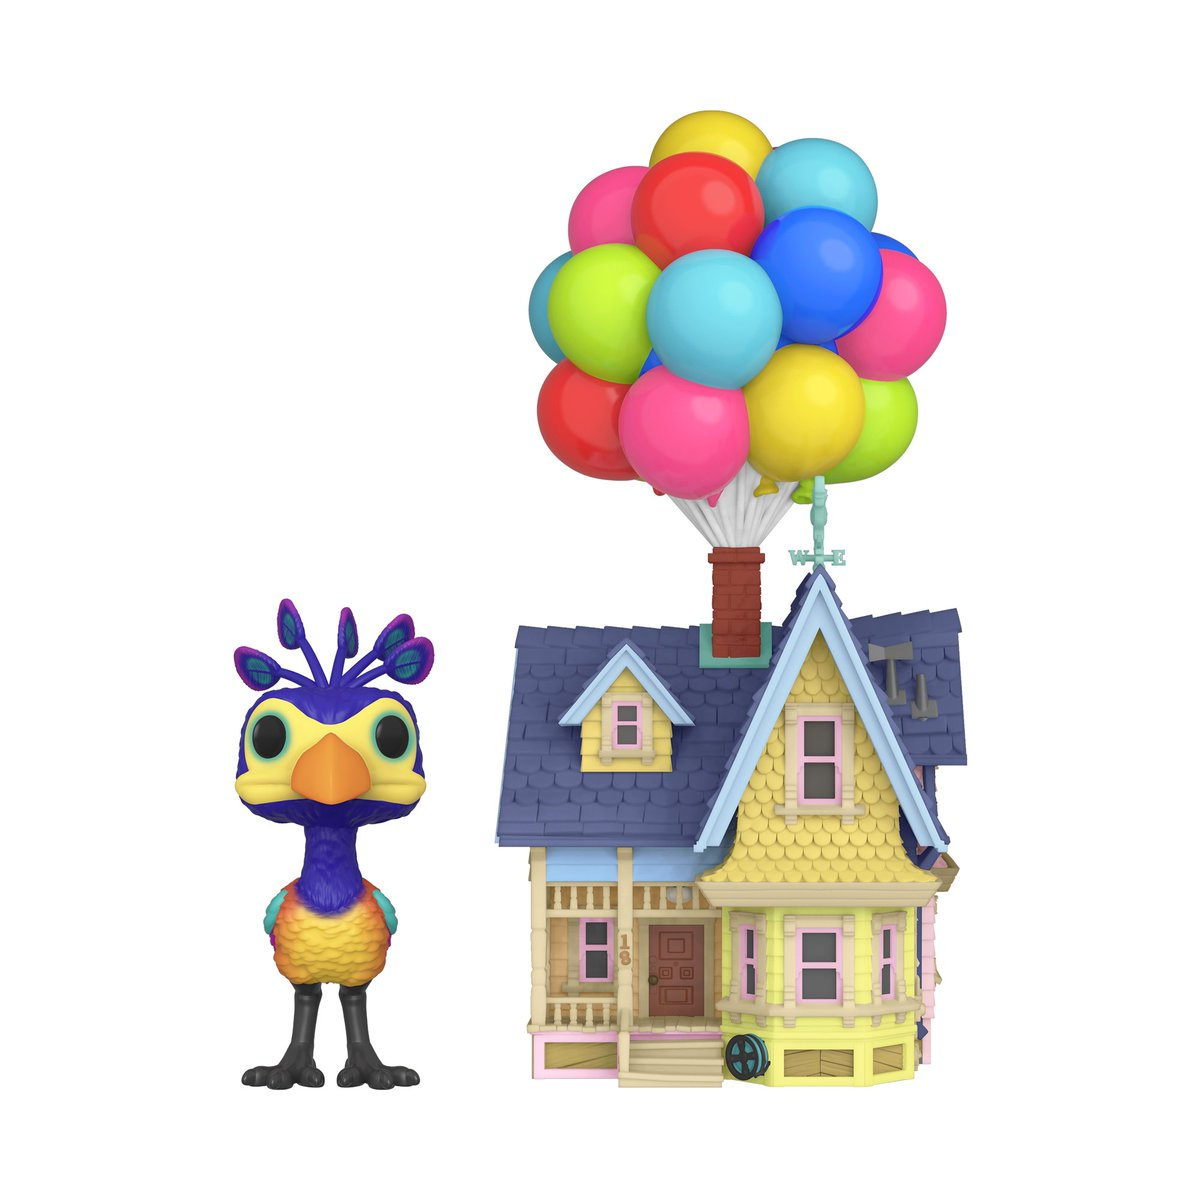 test Twitter Media - RT & follow @OriginalFunko for a chance to WIN a 2019 #NYCC exclusive Kevin With Up House Pop! Town!  #Funko #Exclusive #Giveaway #FunkoNYCC #NYCC #Disney #Up #PopTown https://t.co/3sGGzv3j4N